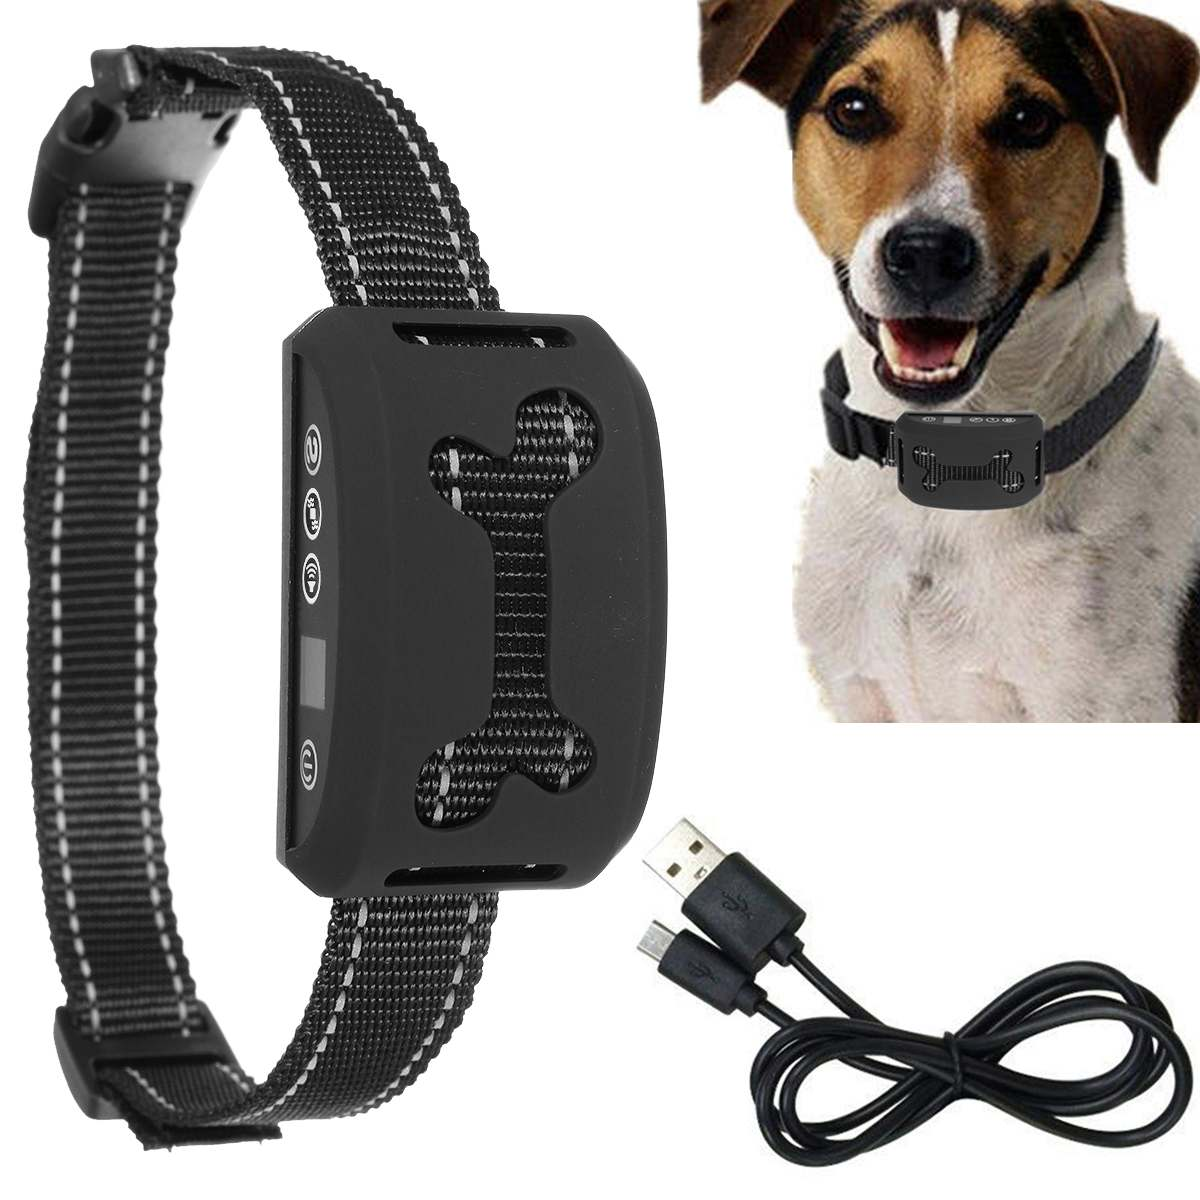 Dog Collars and Leashes for Dog Training